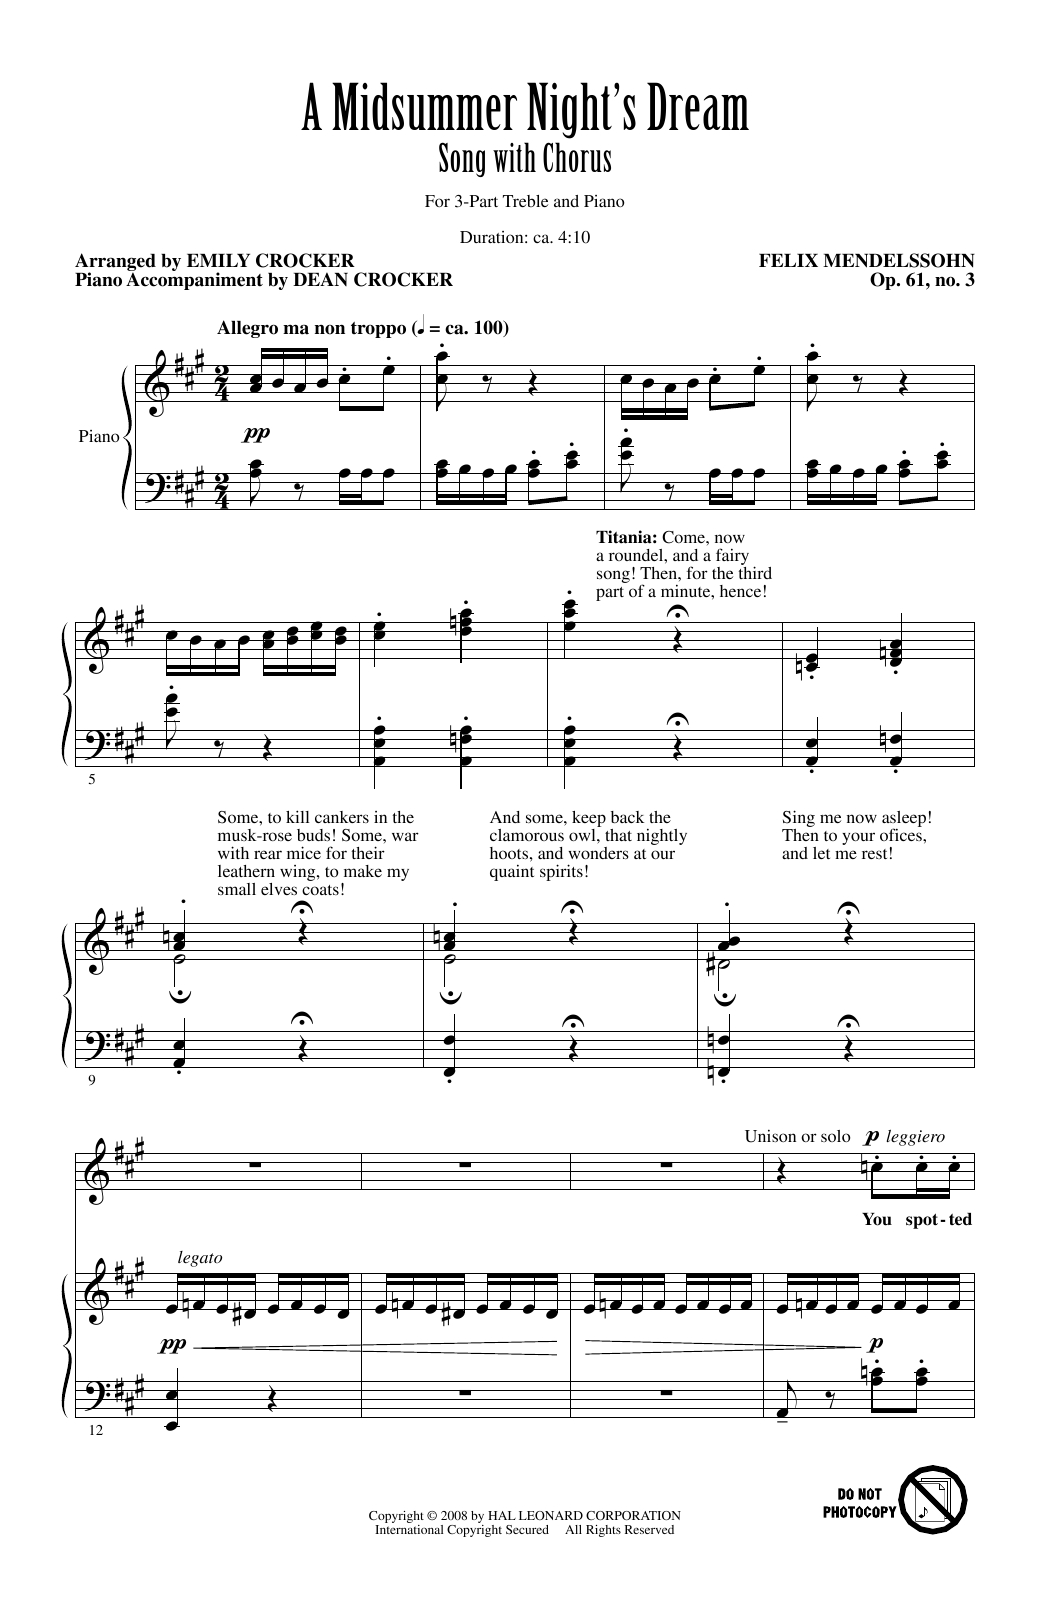 A Midsummer Night's Dream Overture, Excerpt (arr. Emily Crocker) Sheet Music